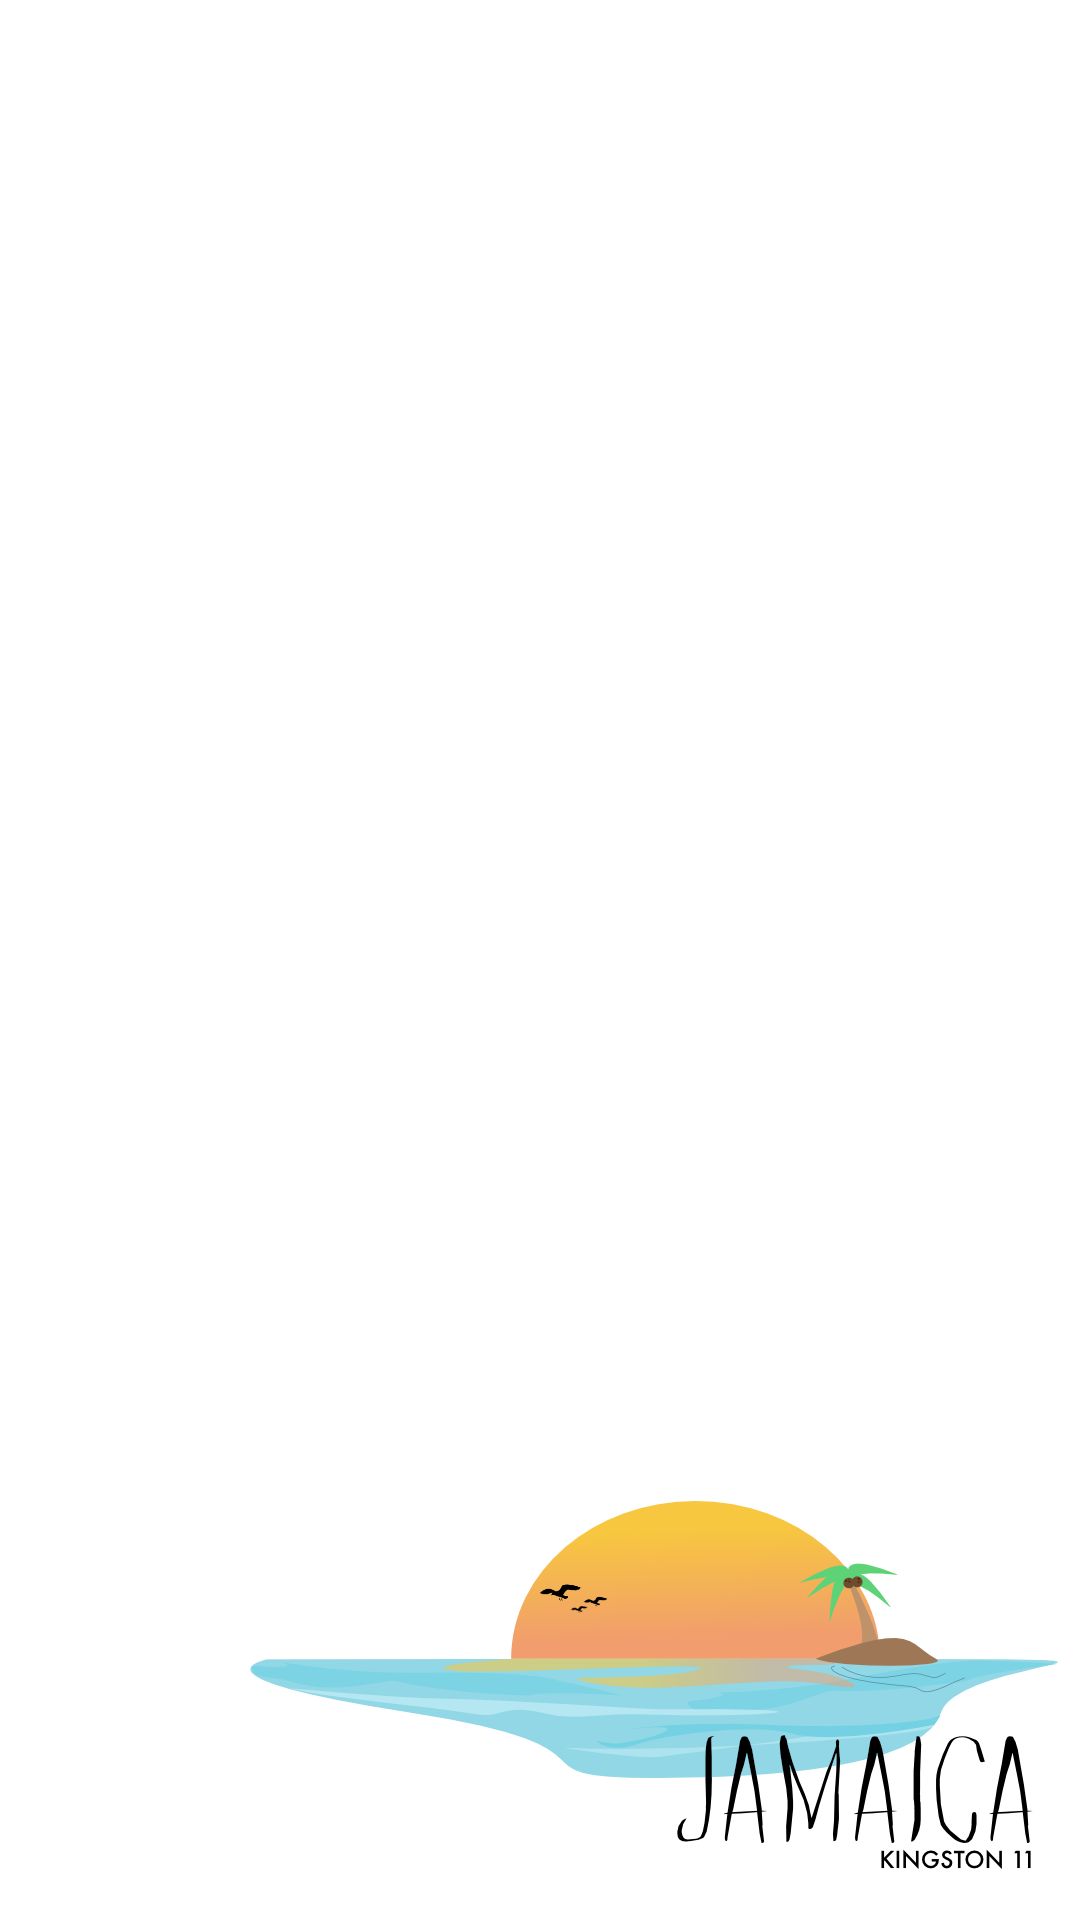 GEOFILTERS - Check out geo-filters here.